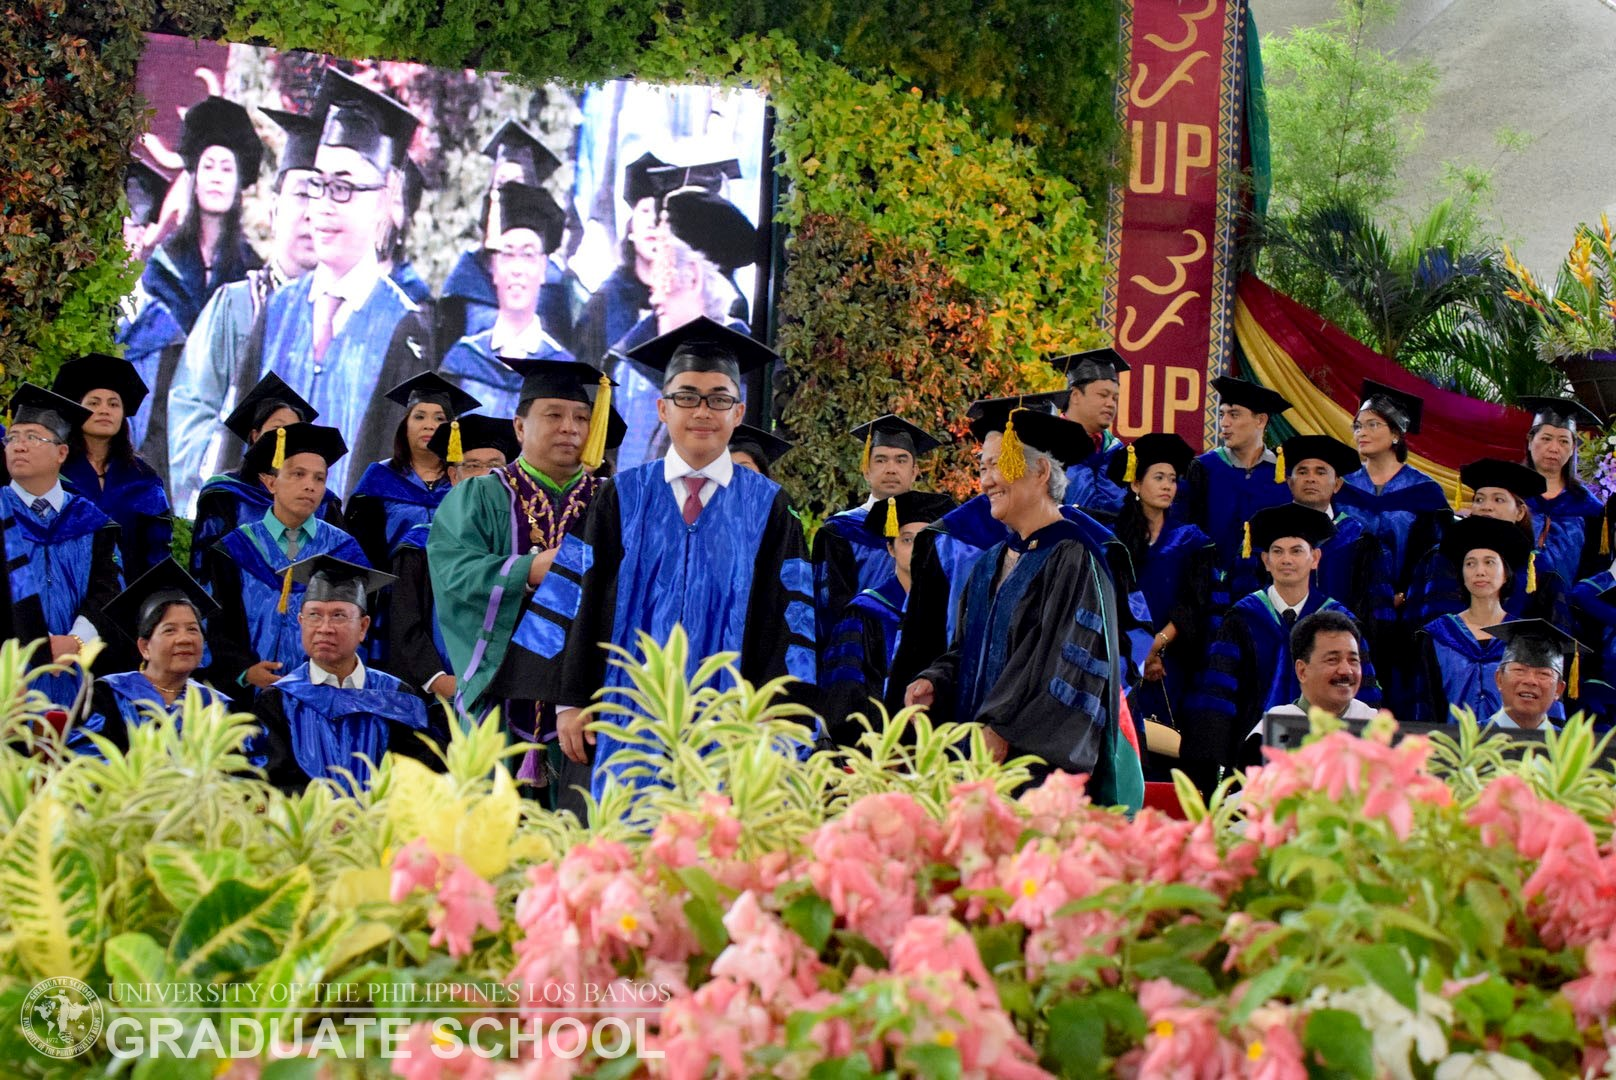 UPLB GRADUATE SCHOOL 11th HOODING AND RECOGNITION CEREMONIES